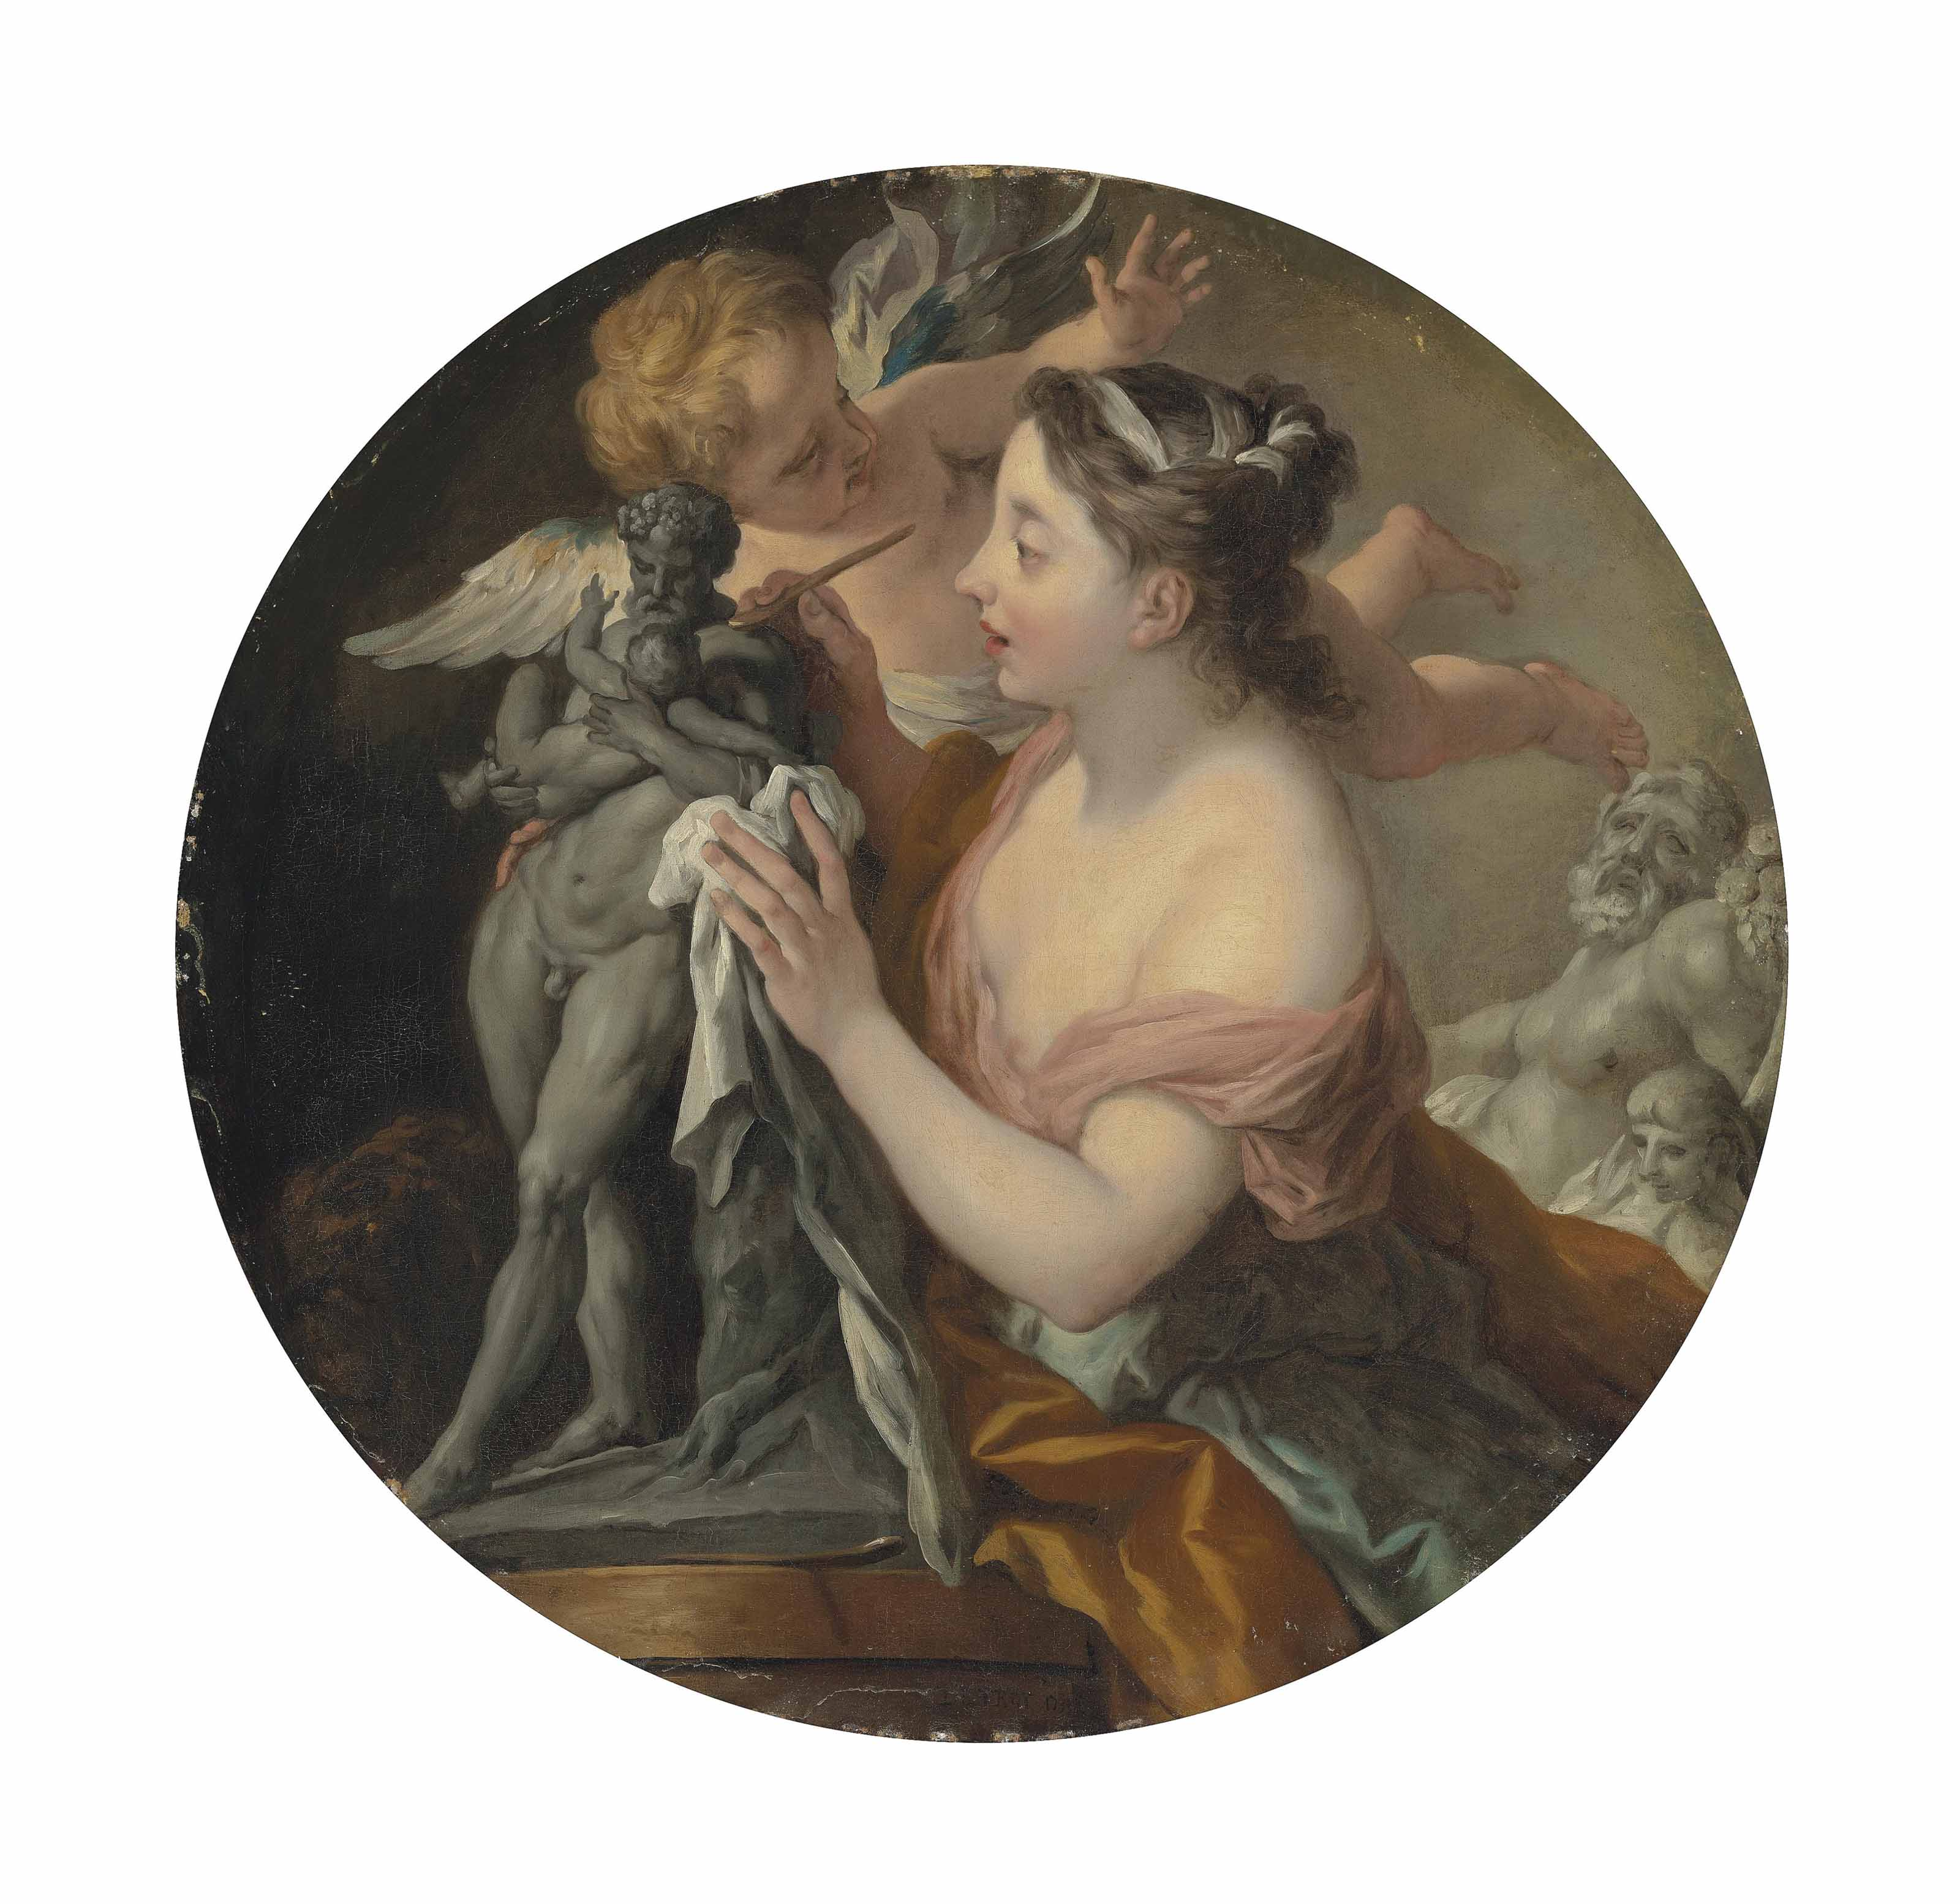 Allegory of Sculpture, with a model of Silenus with the infant Dionysus